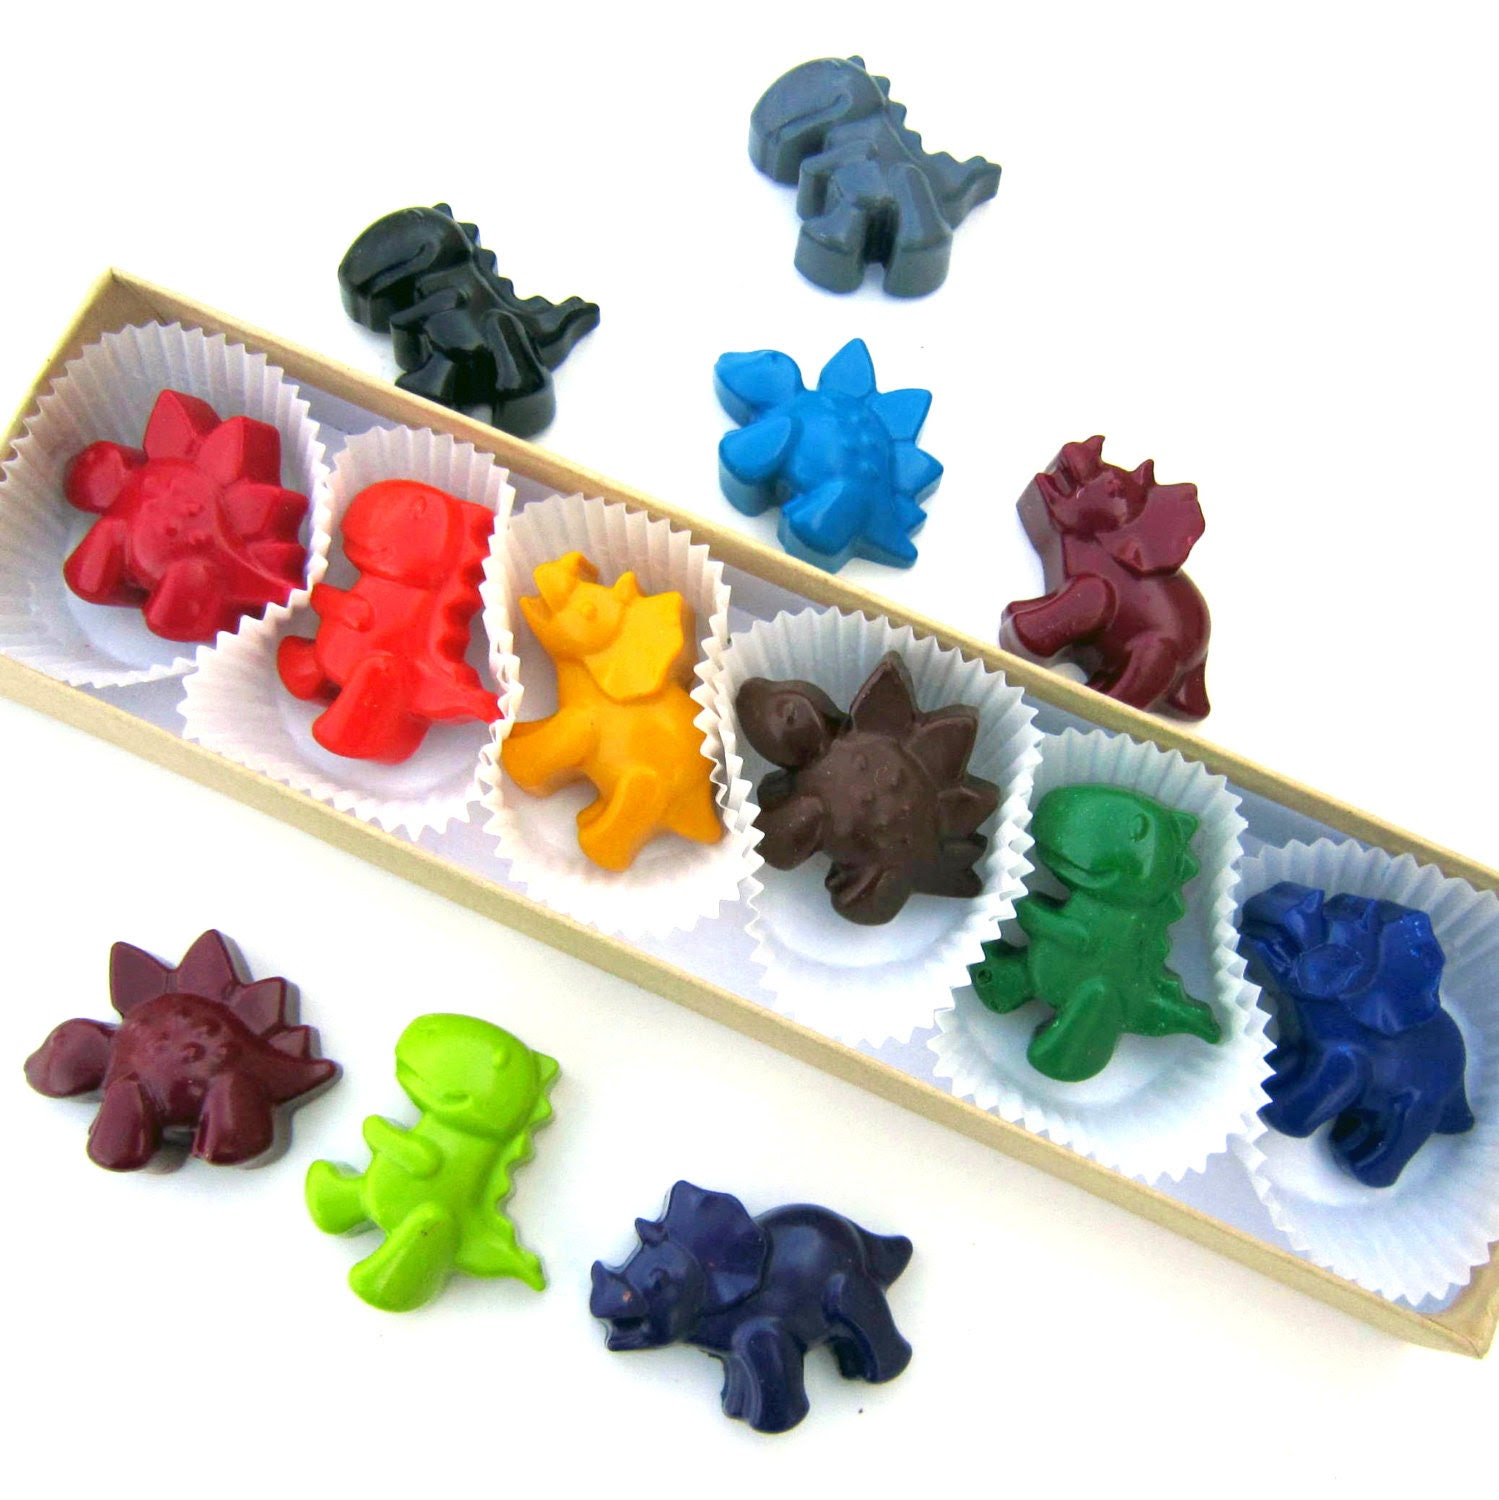 Kids' DINOSAUR CRAYONS - Coloring Party Favors - Set of Six (6) - Eco-Friendly Toys in Assorted Colors - Free Gift Box